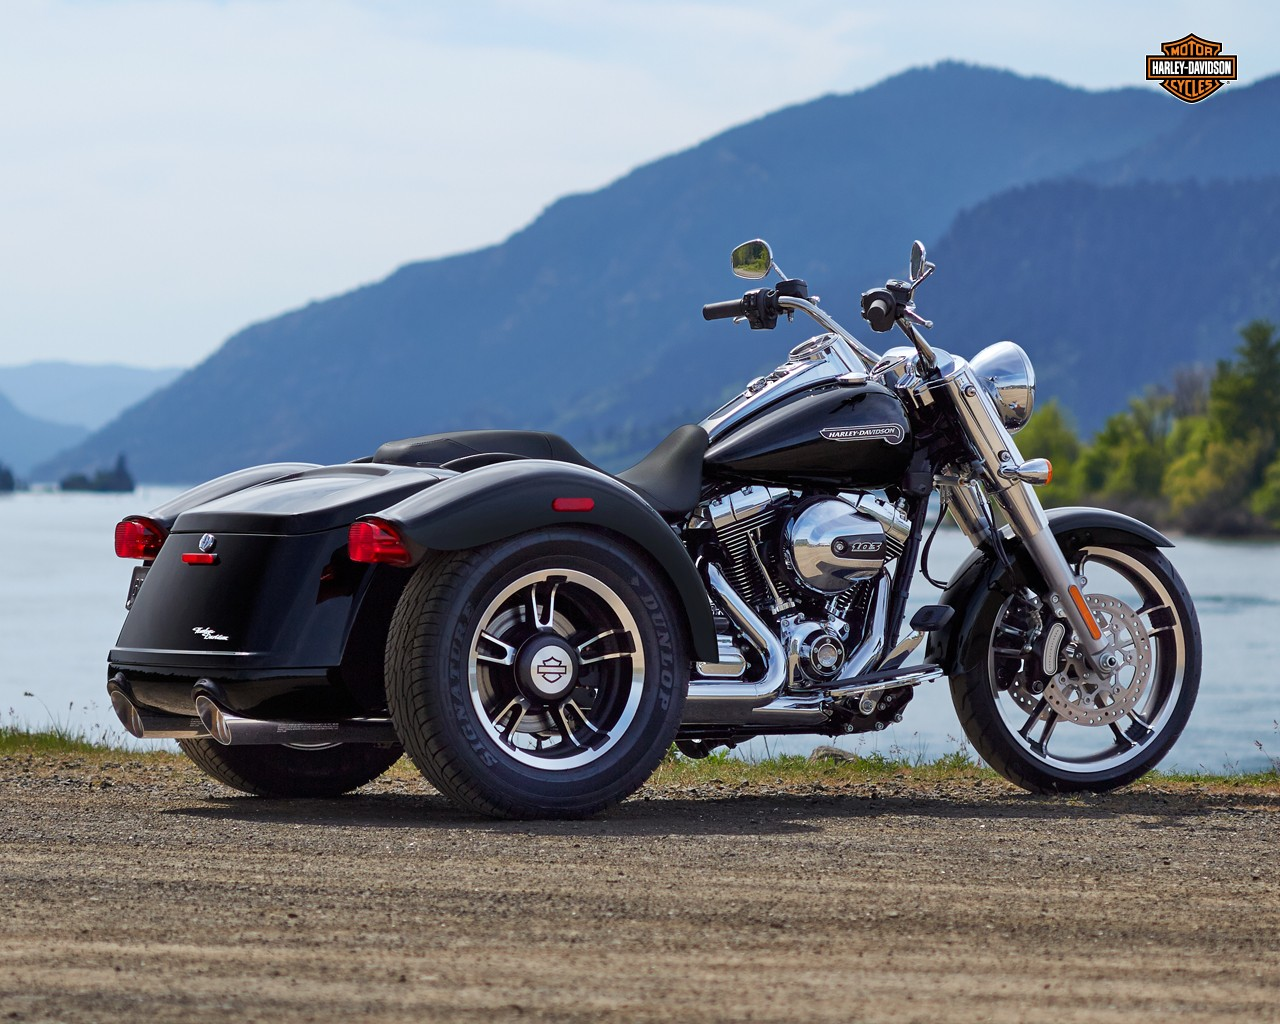 2015 harley davidson freewheeler trike makes appearance autoevolution. Black Bedroom Furniture Sets. Home Design Ideas